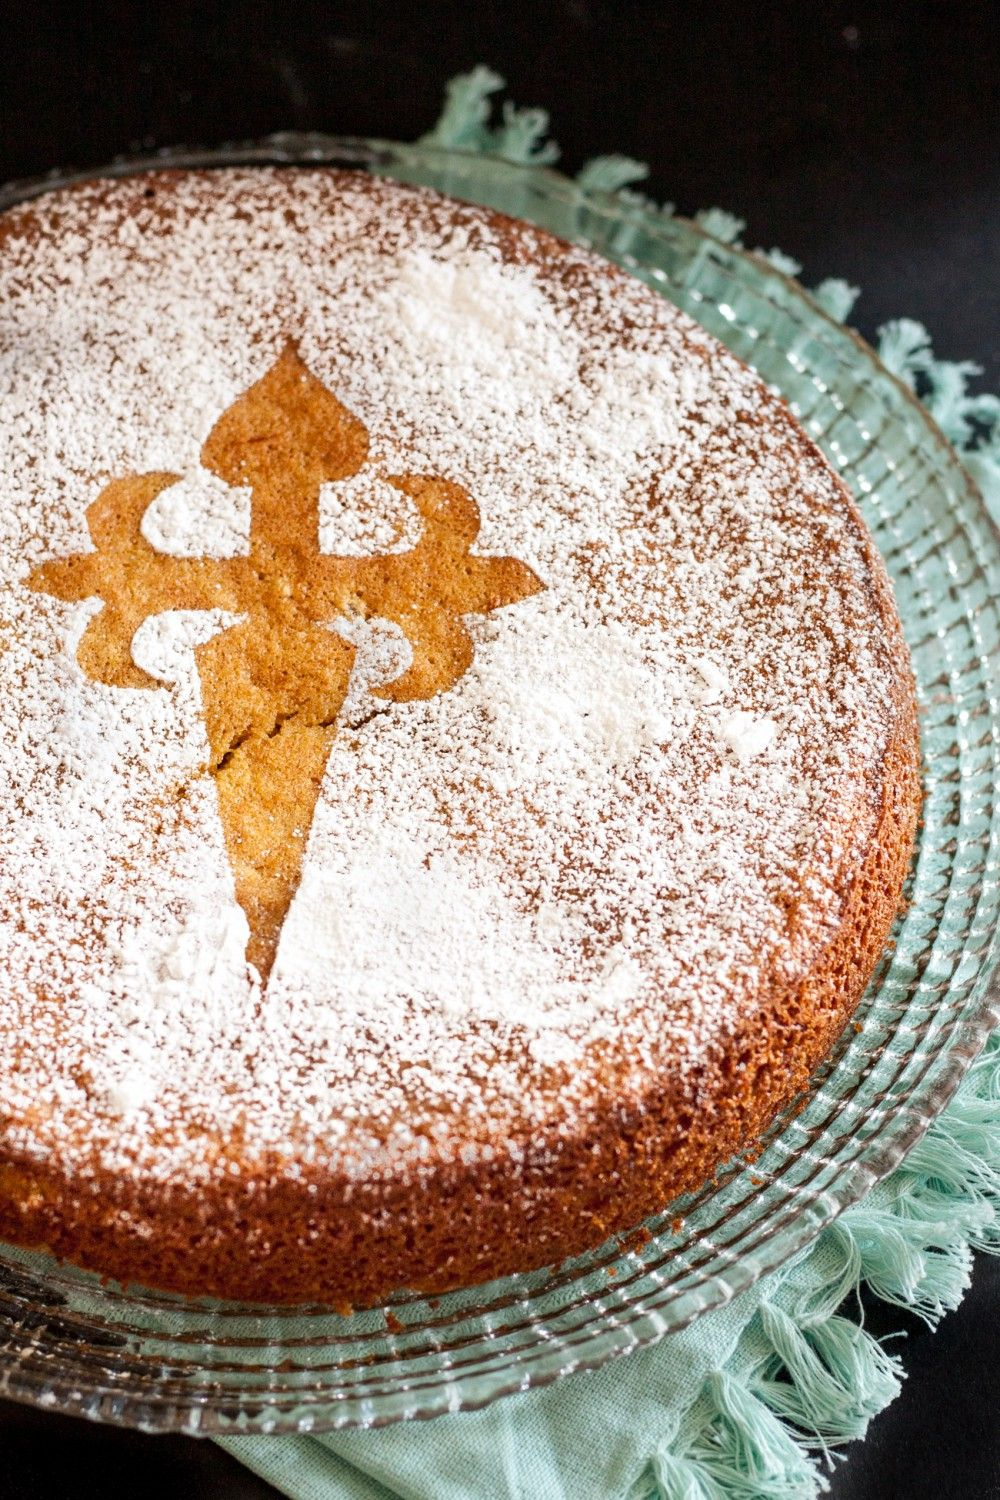 The tarta de santiago saint james cake is a classic spanish the tarta de santiago saint james cake is a classic spanish dessert this gluten free almond cake recipe is simple to follow and makes a delightful forumfinder Choice Image